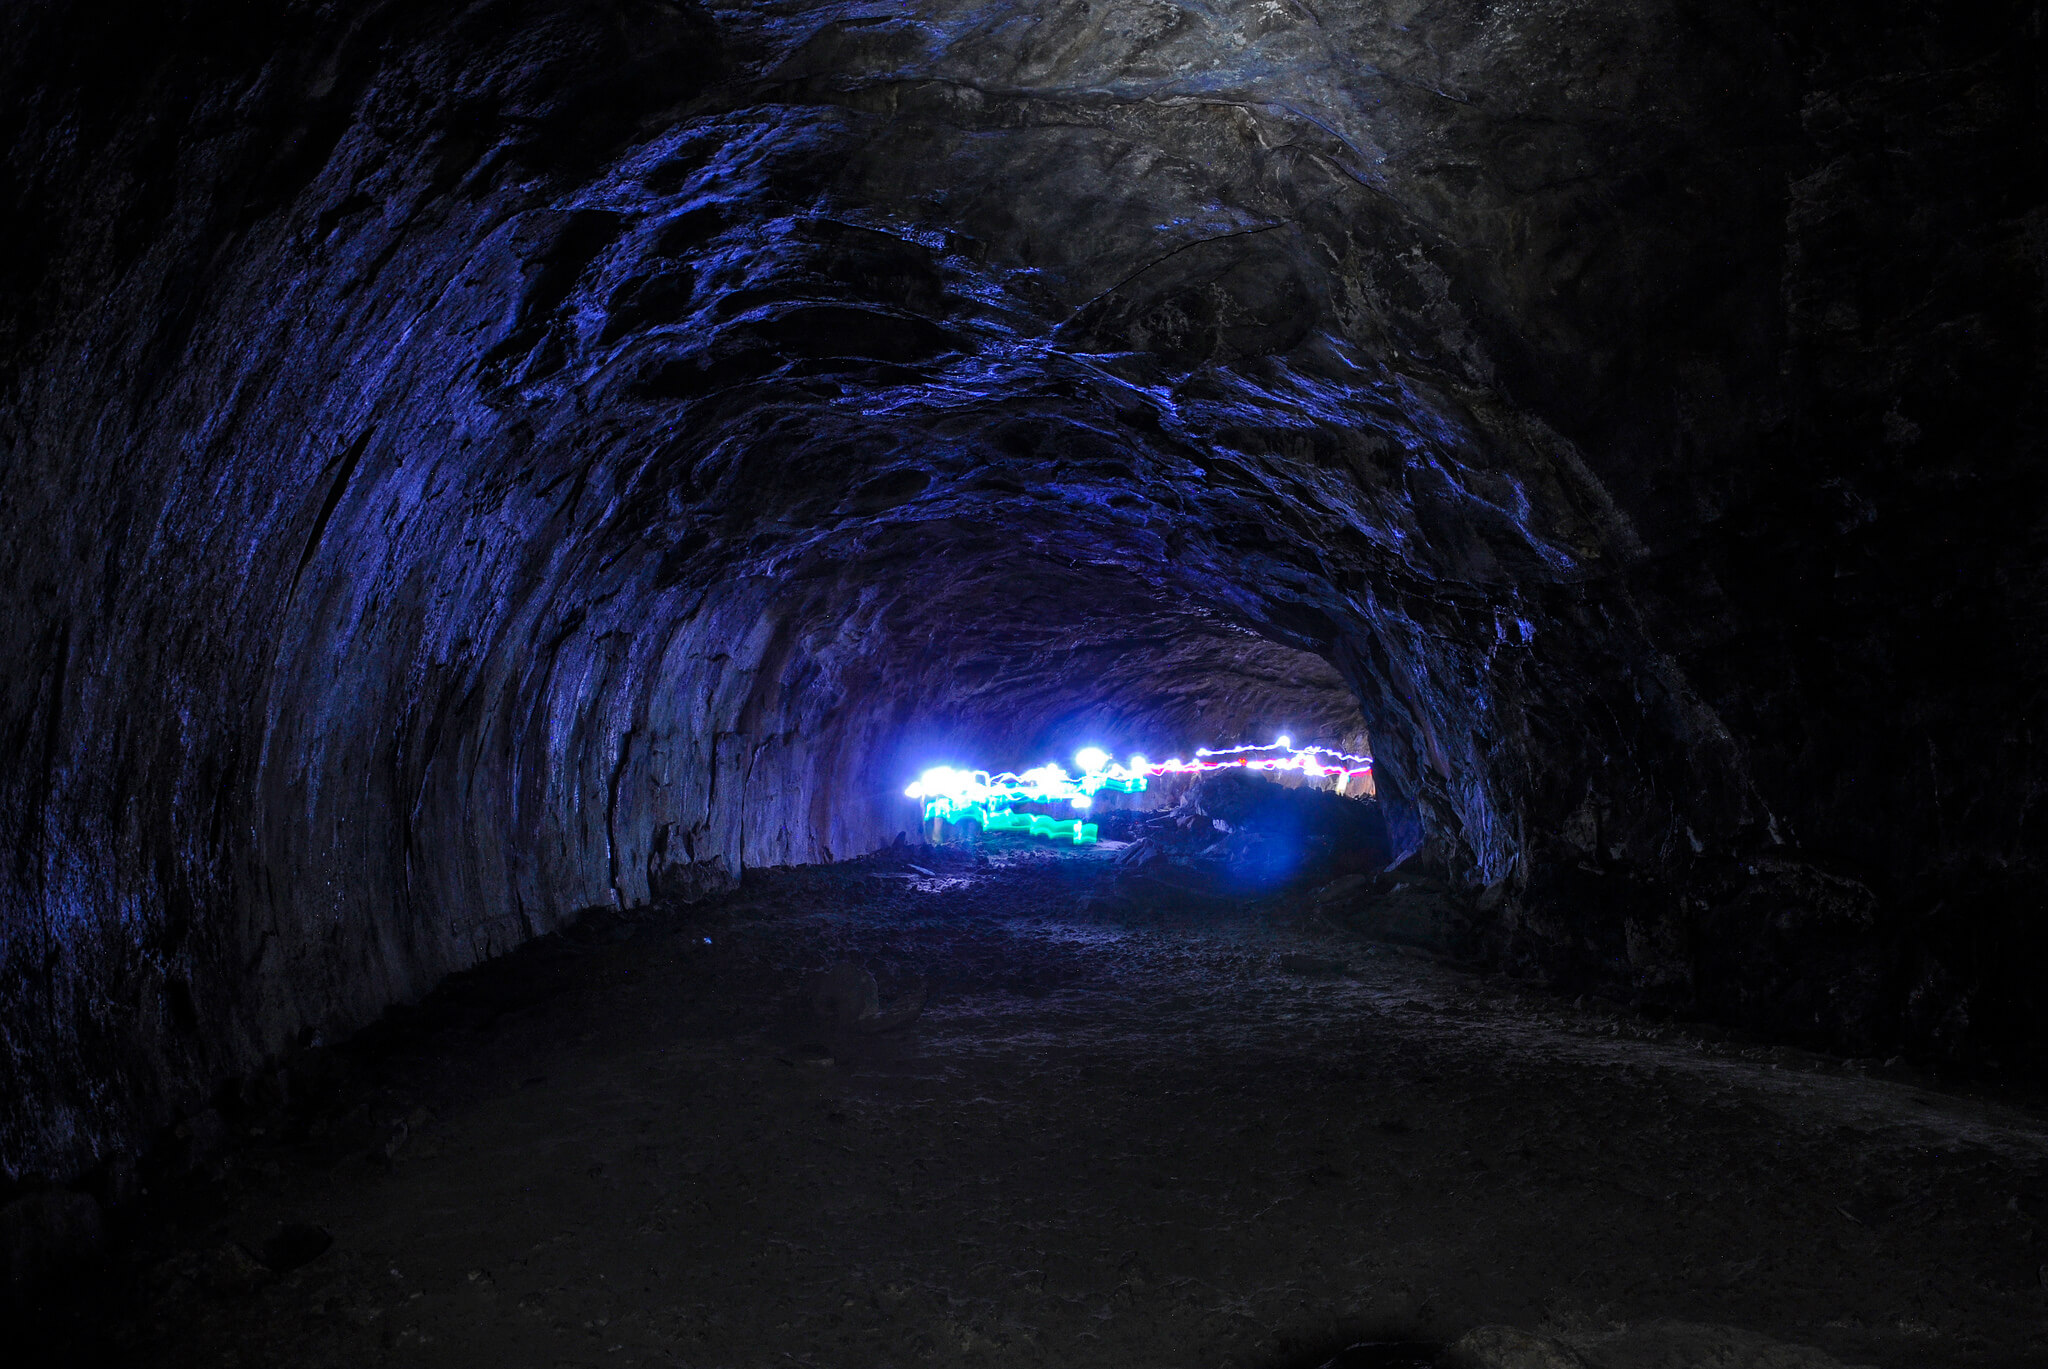 5 Reasons Lava River Cave is the Coolest Cave You've Never Seen